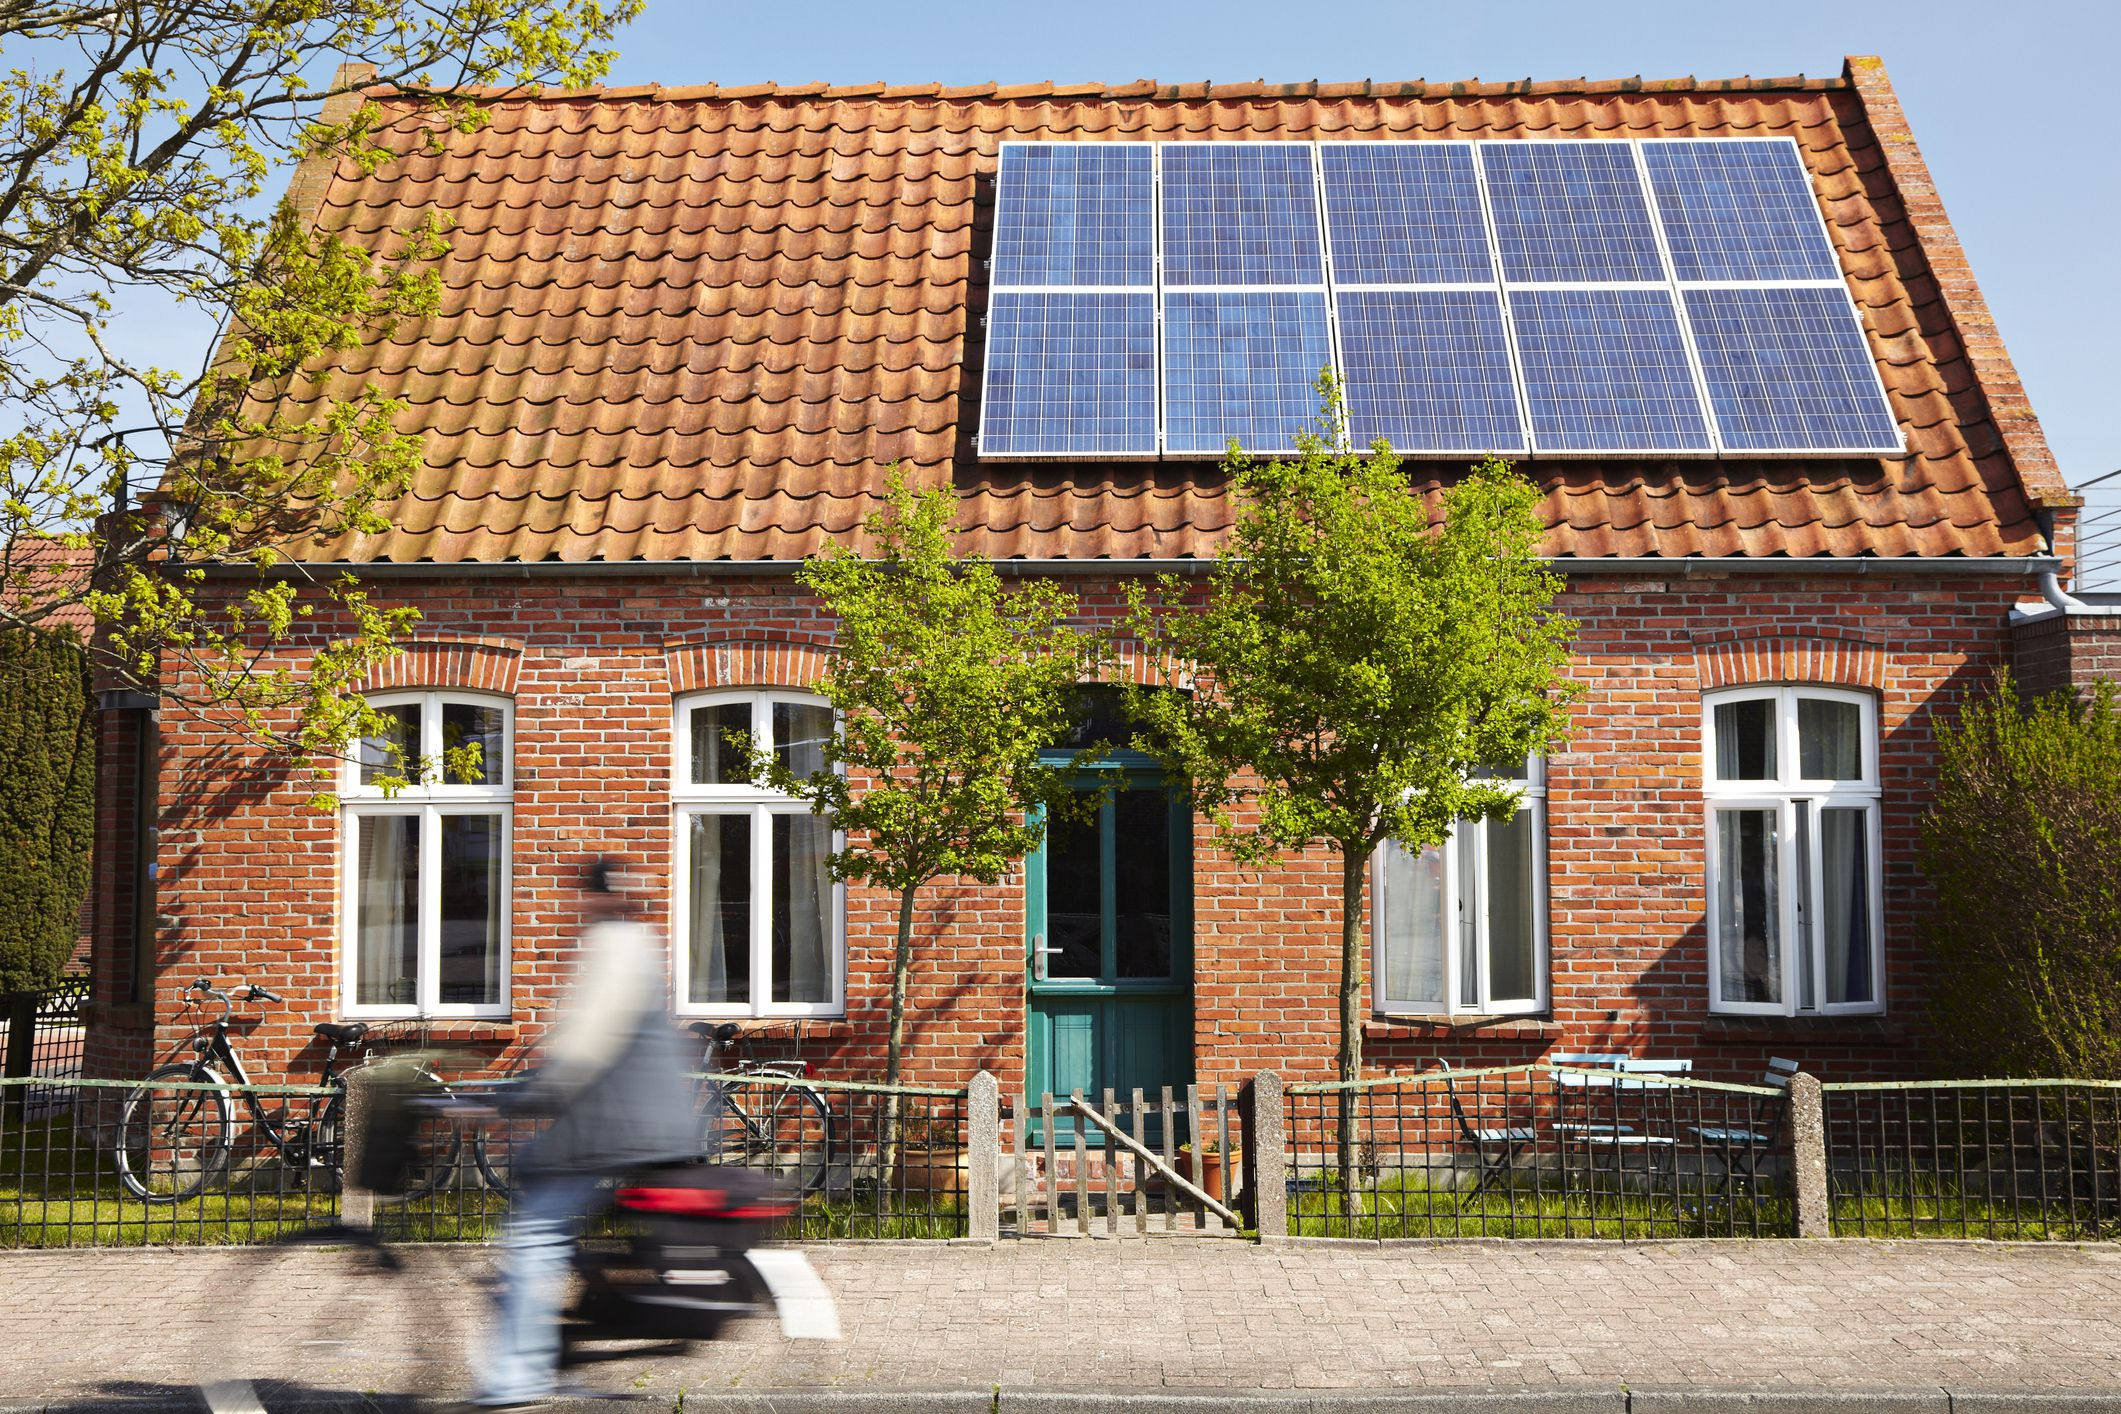 Options For Solar Power At Home